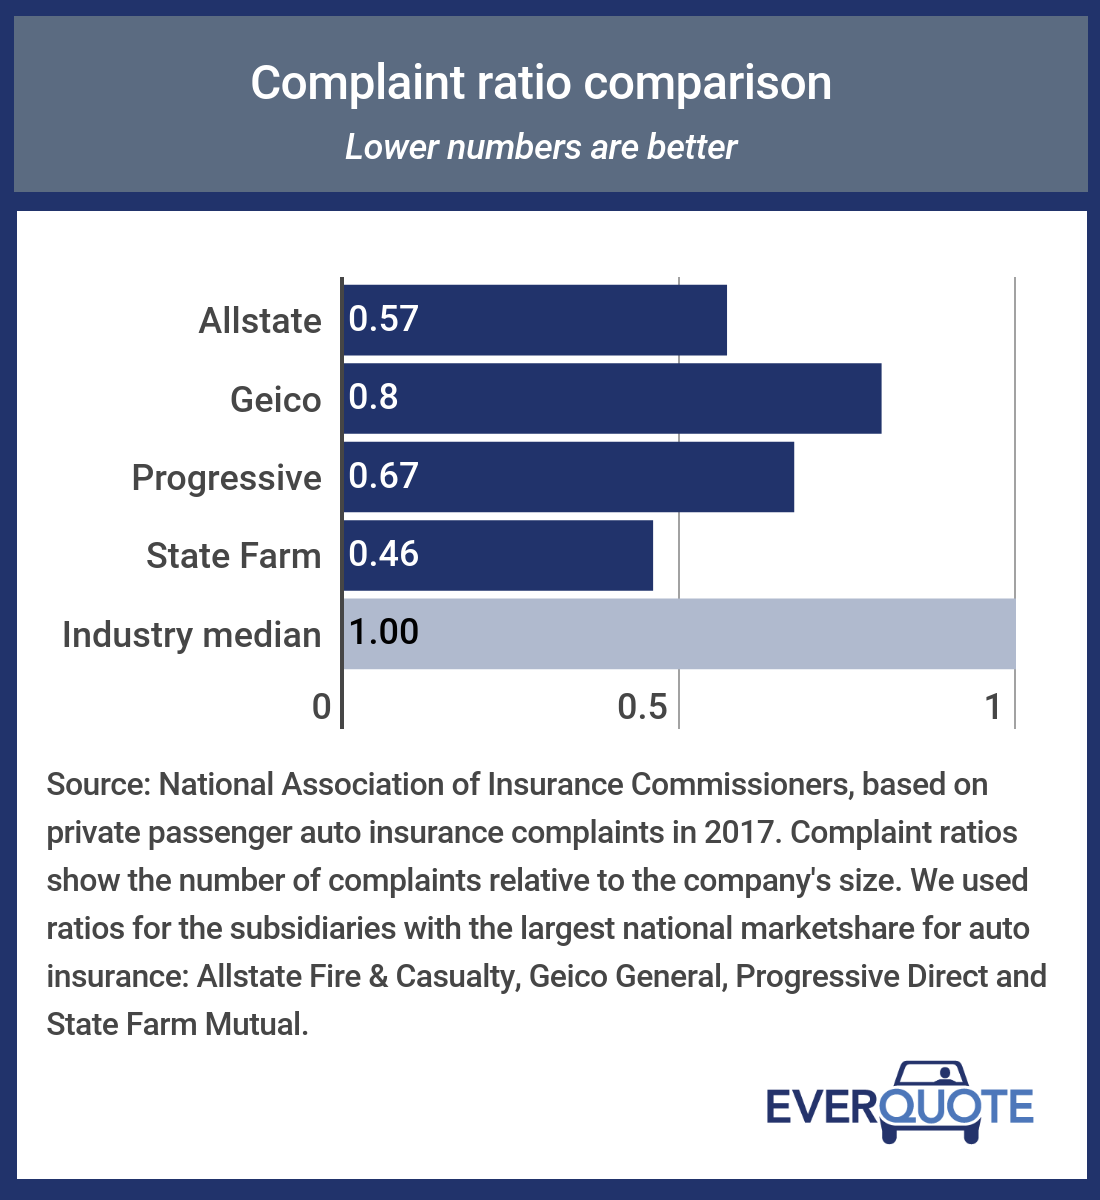 Car Insurance Quotes Comparison: Compare Allstate Vs. Geico Vs. Progressive Vs. State Farm